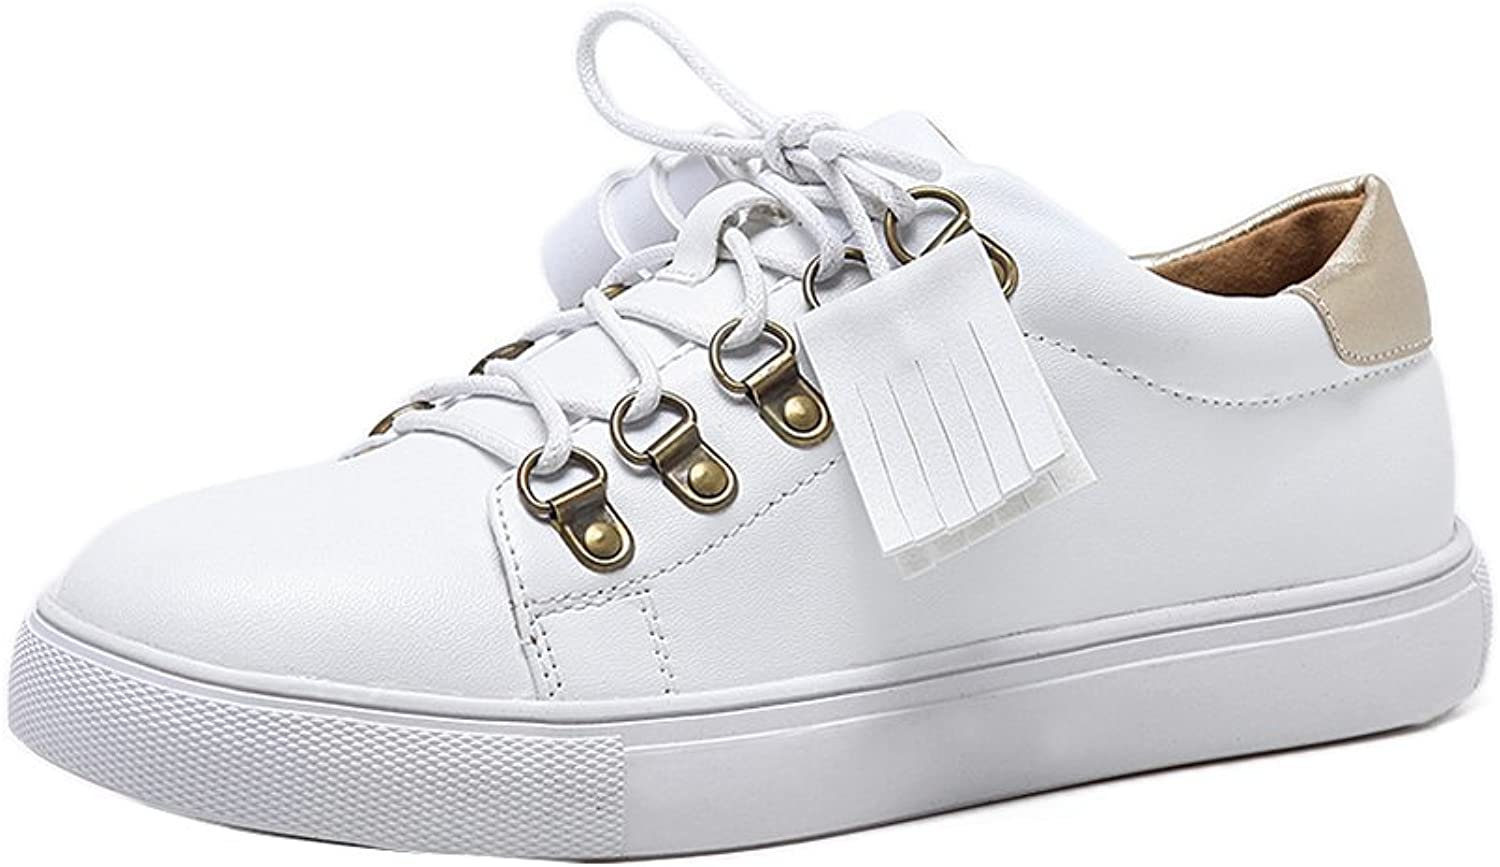 1TO9 Womens Lace-Up Light-Weight Microfiber White Microfiber Walking shoes - 7 B(M) US